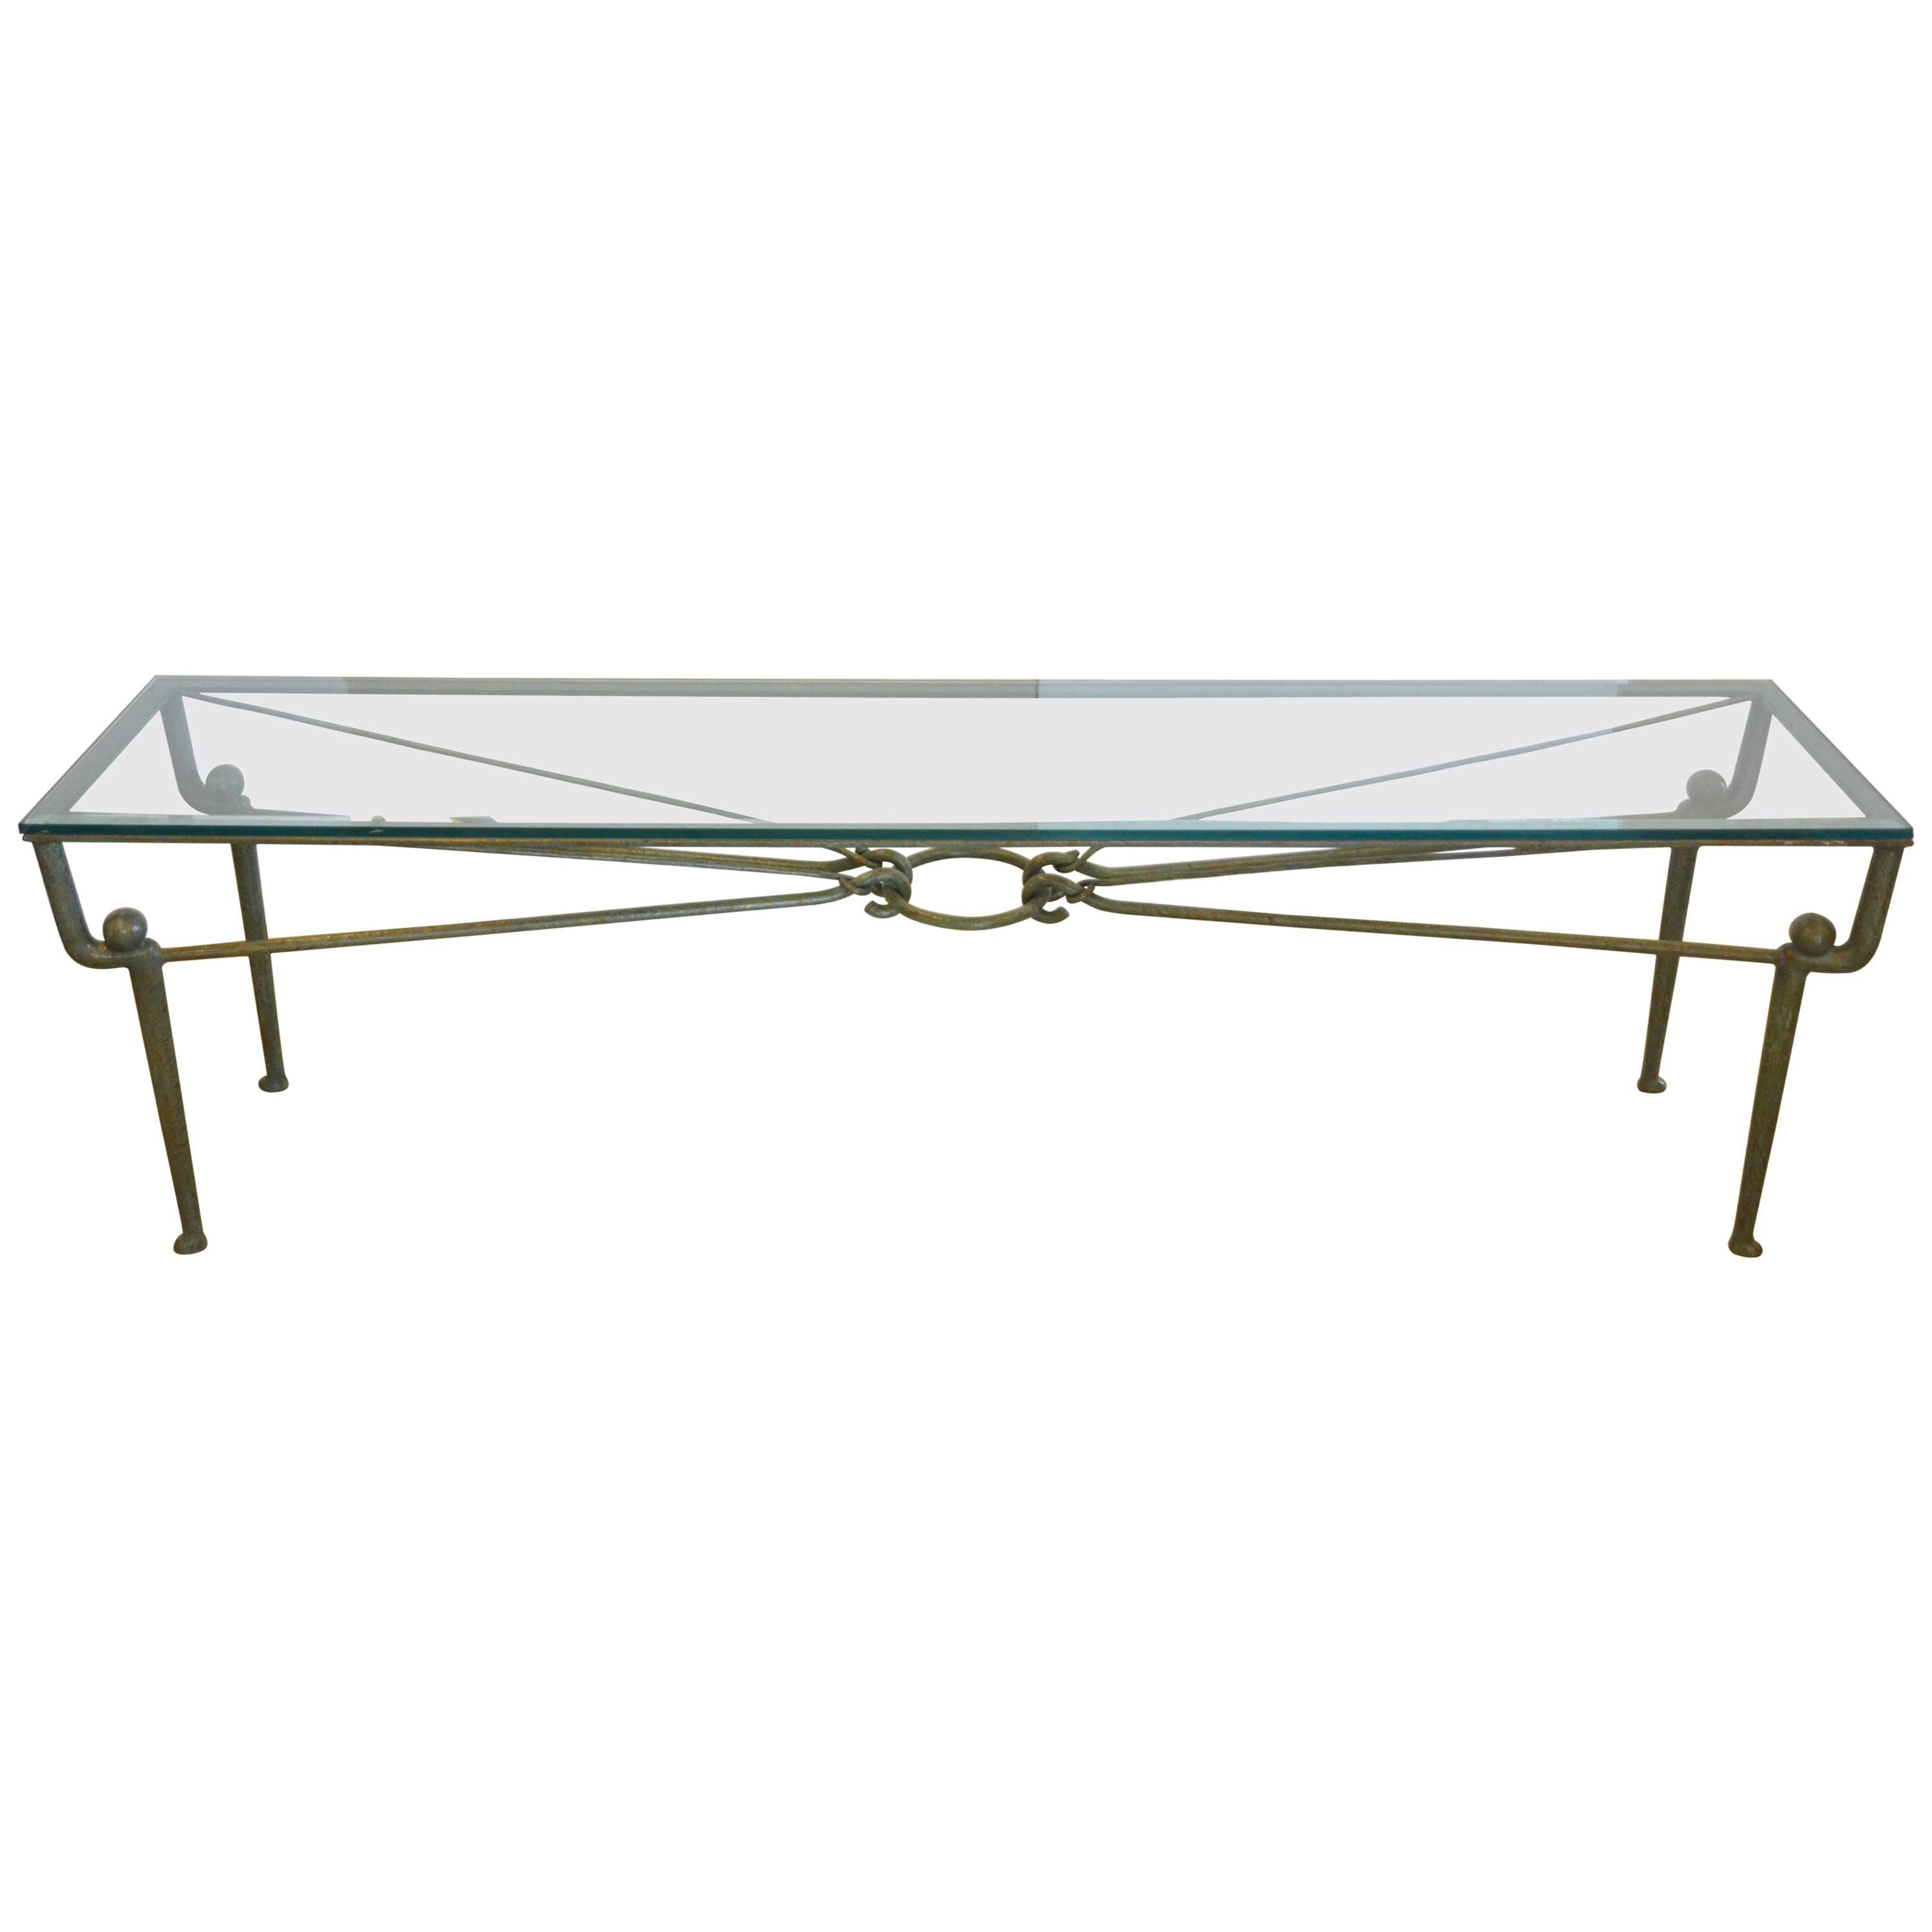 Iron Console Table With Glass Top And Copper Green Patina At 1stdibs With Mix Patina Metal Frame Console Tables (View 13 of 30)